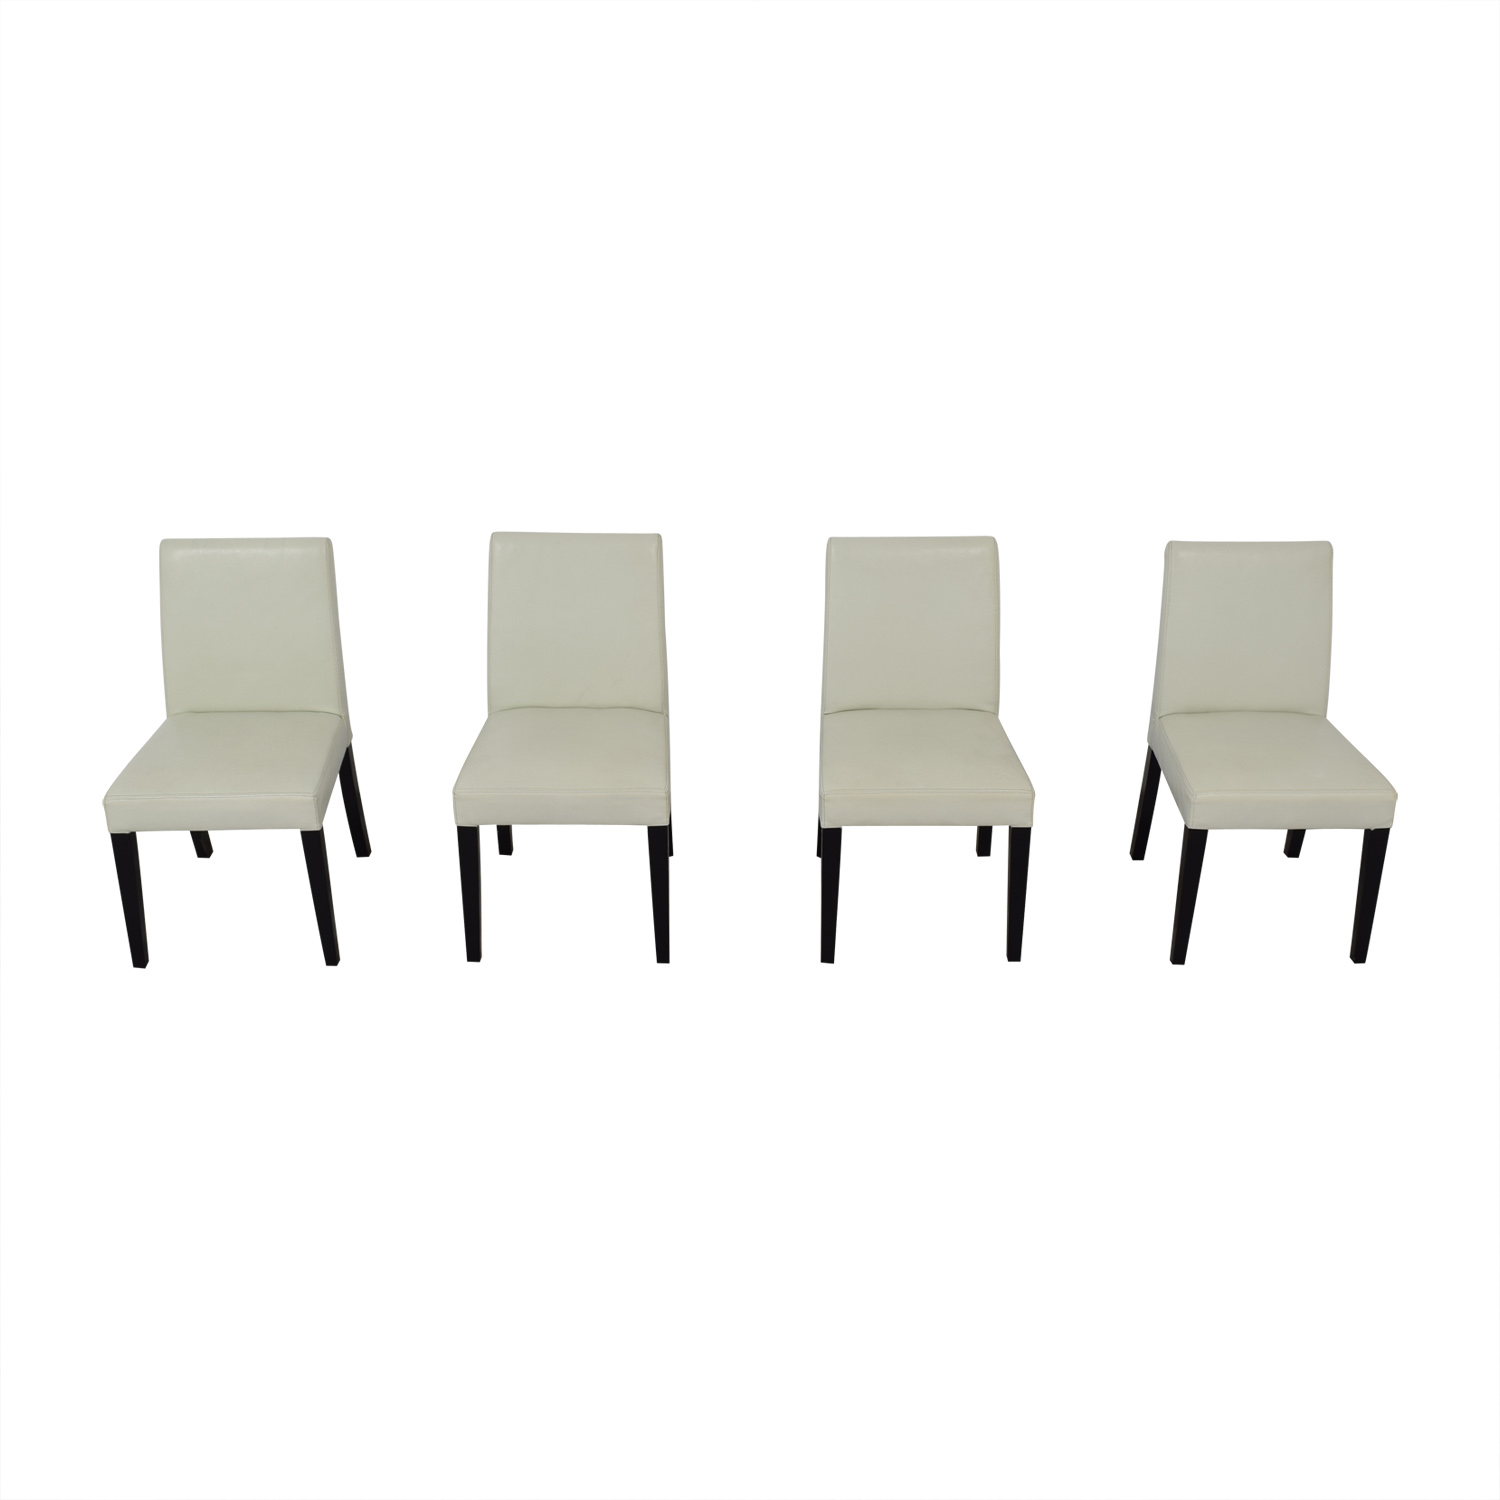 shop Crate & Barrel White Leather Dining Chairs Crate & Barrel